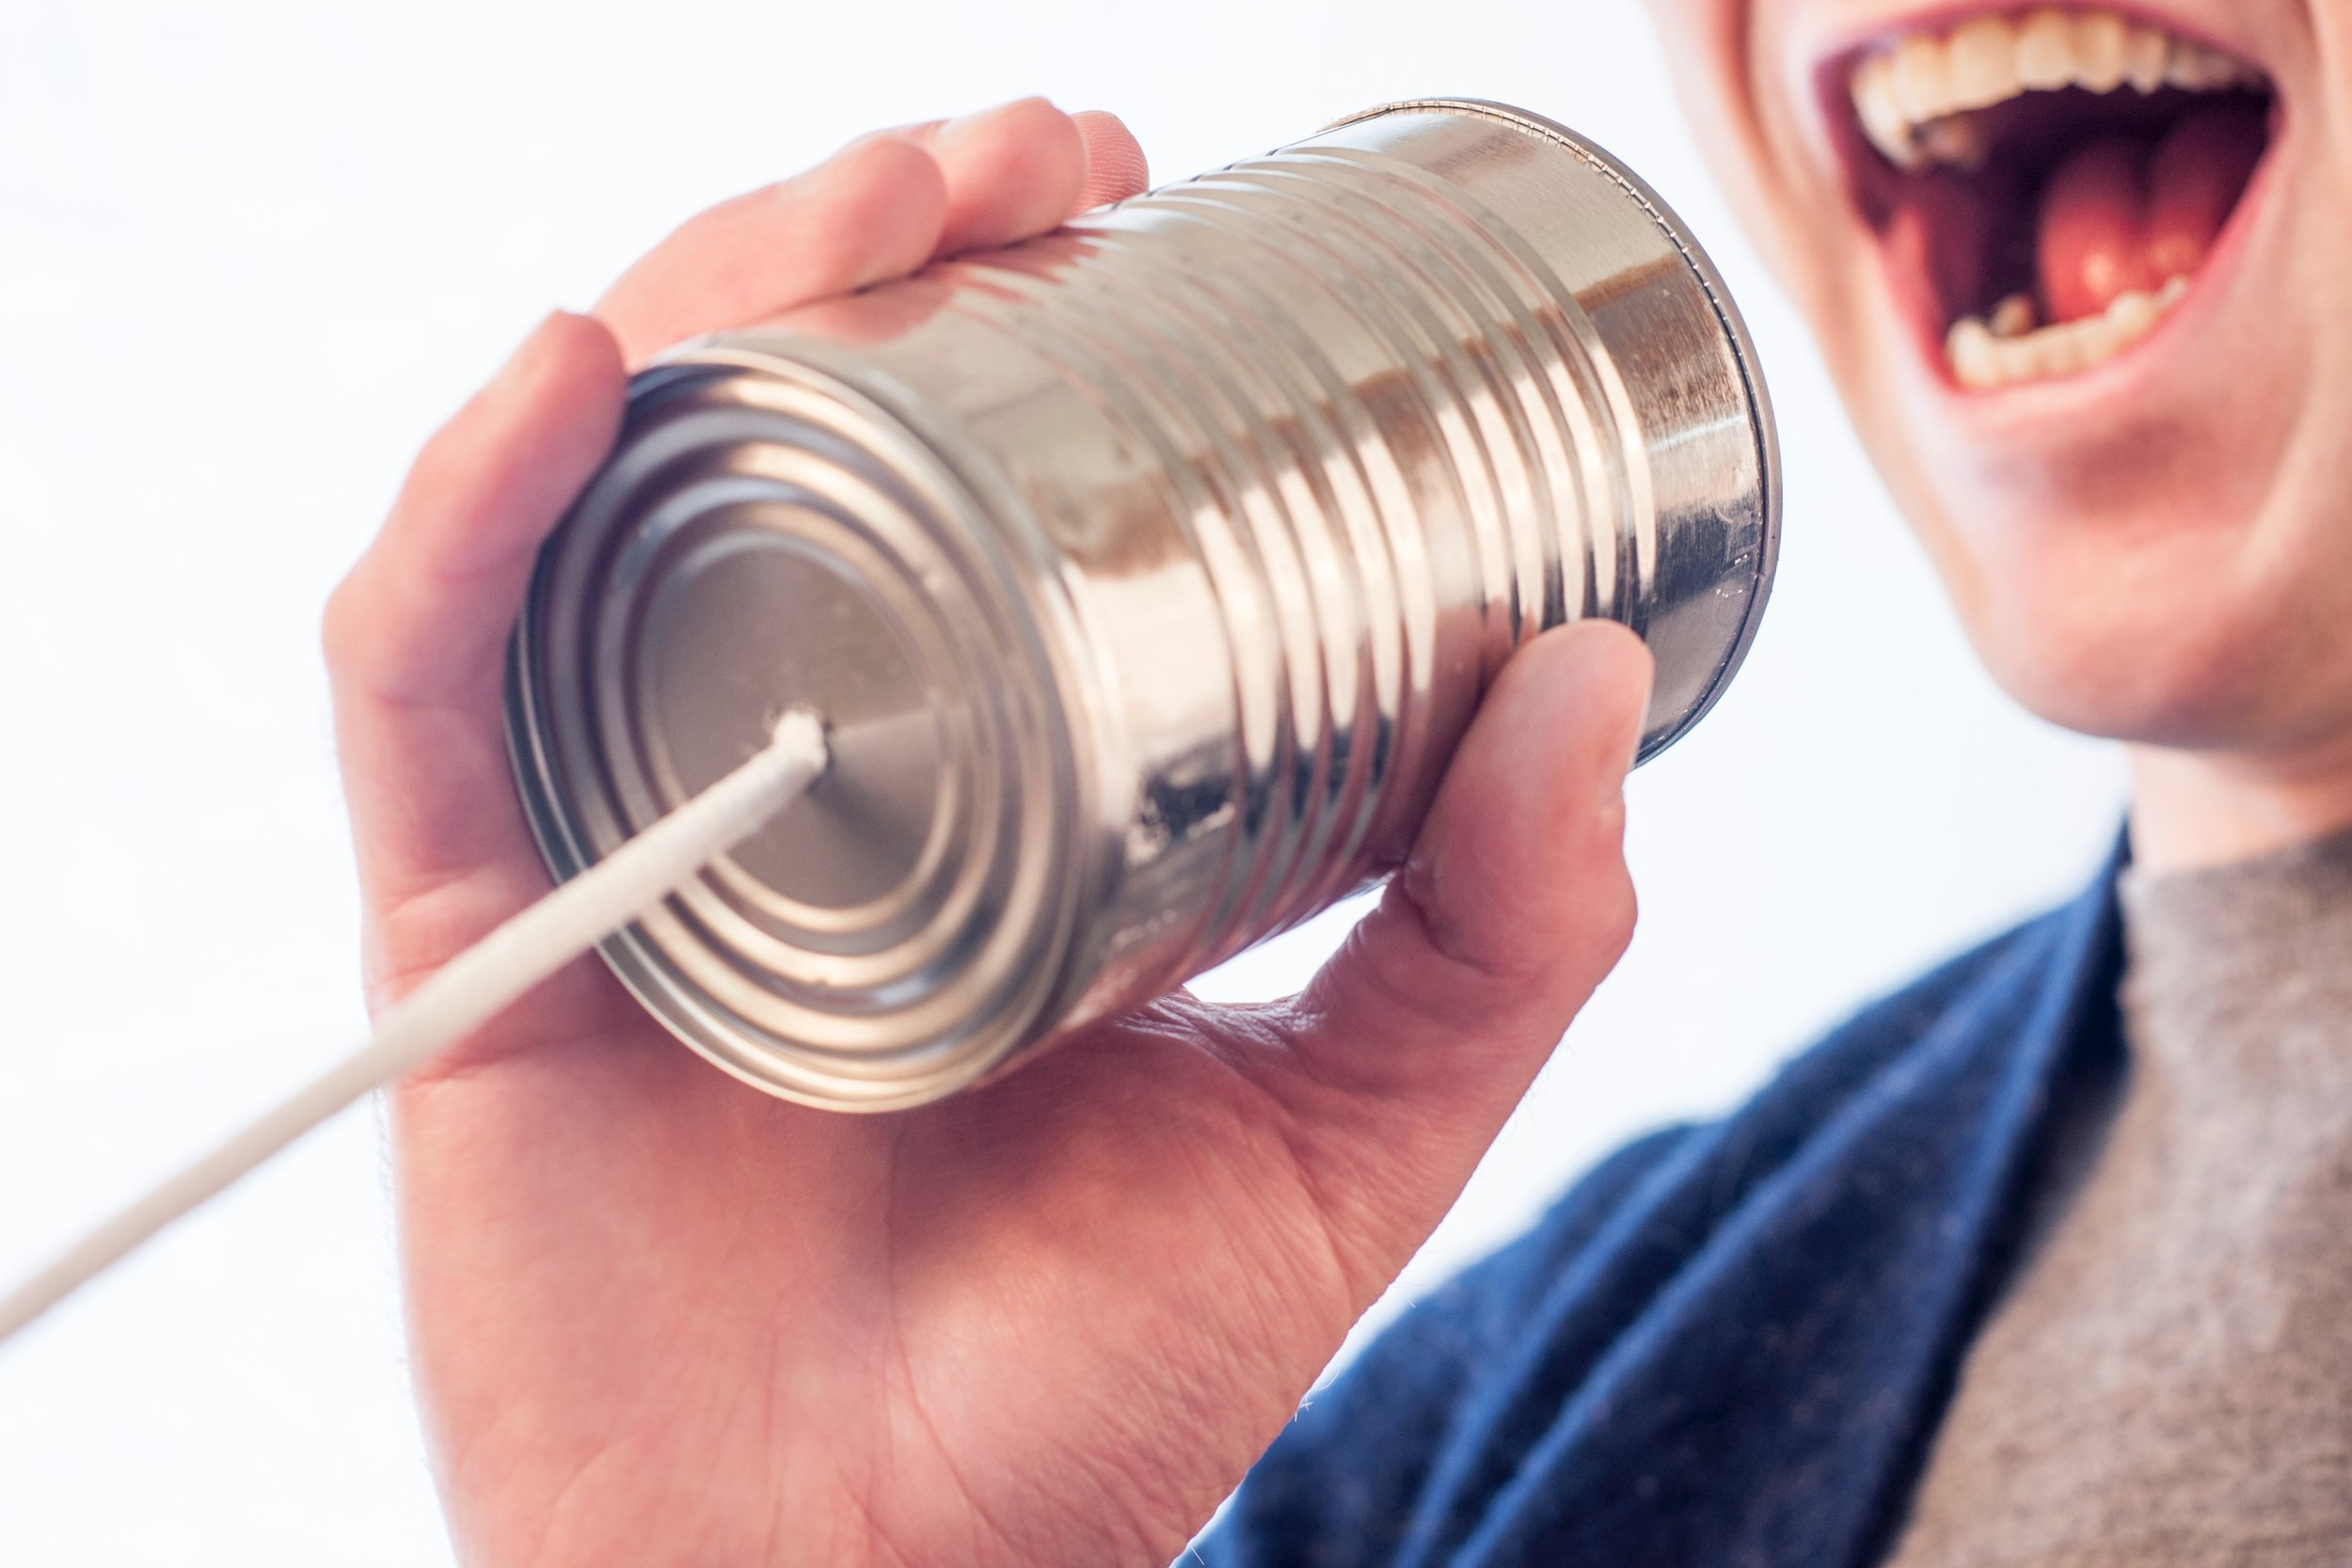 Man calling on can to make FeedsyReferral